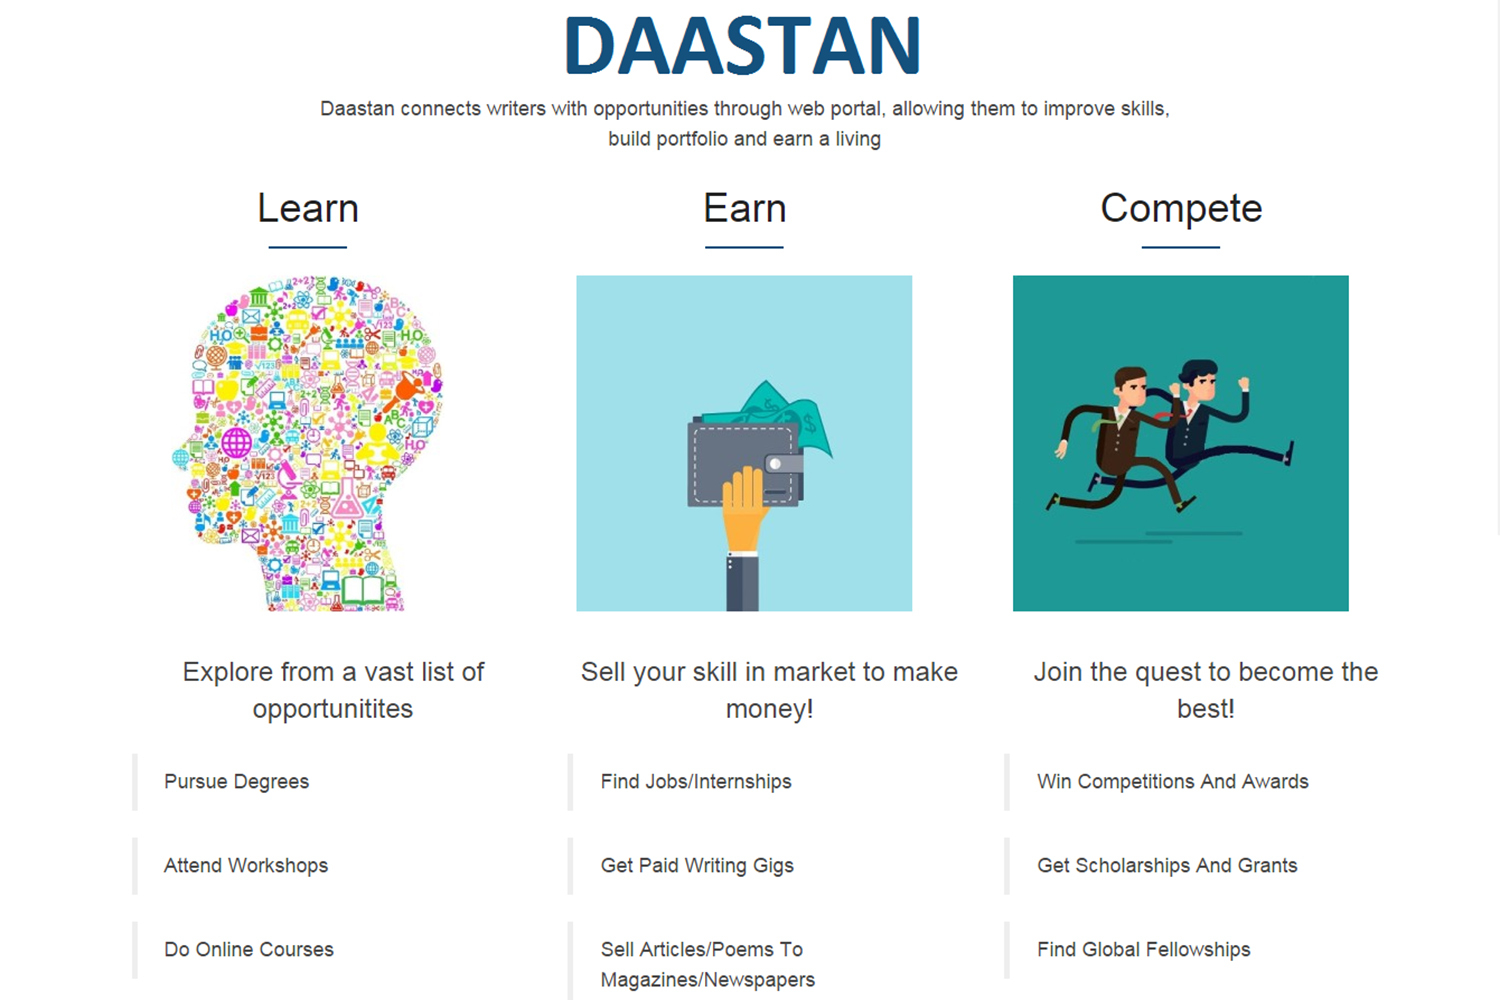 Daastan takes a wholistic approach to starting a writing career